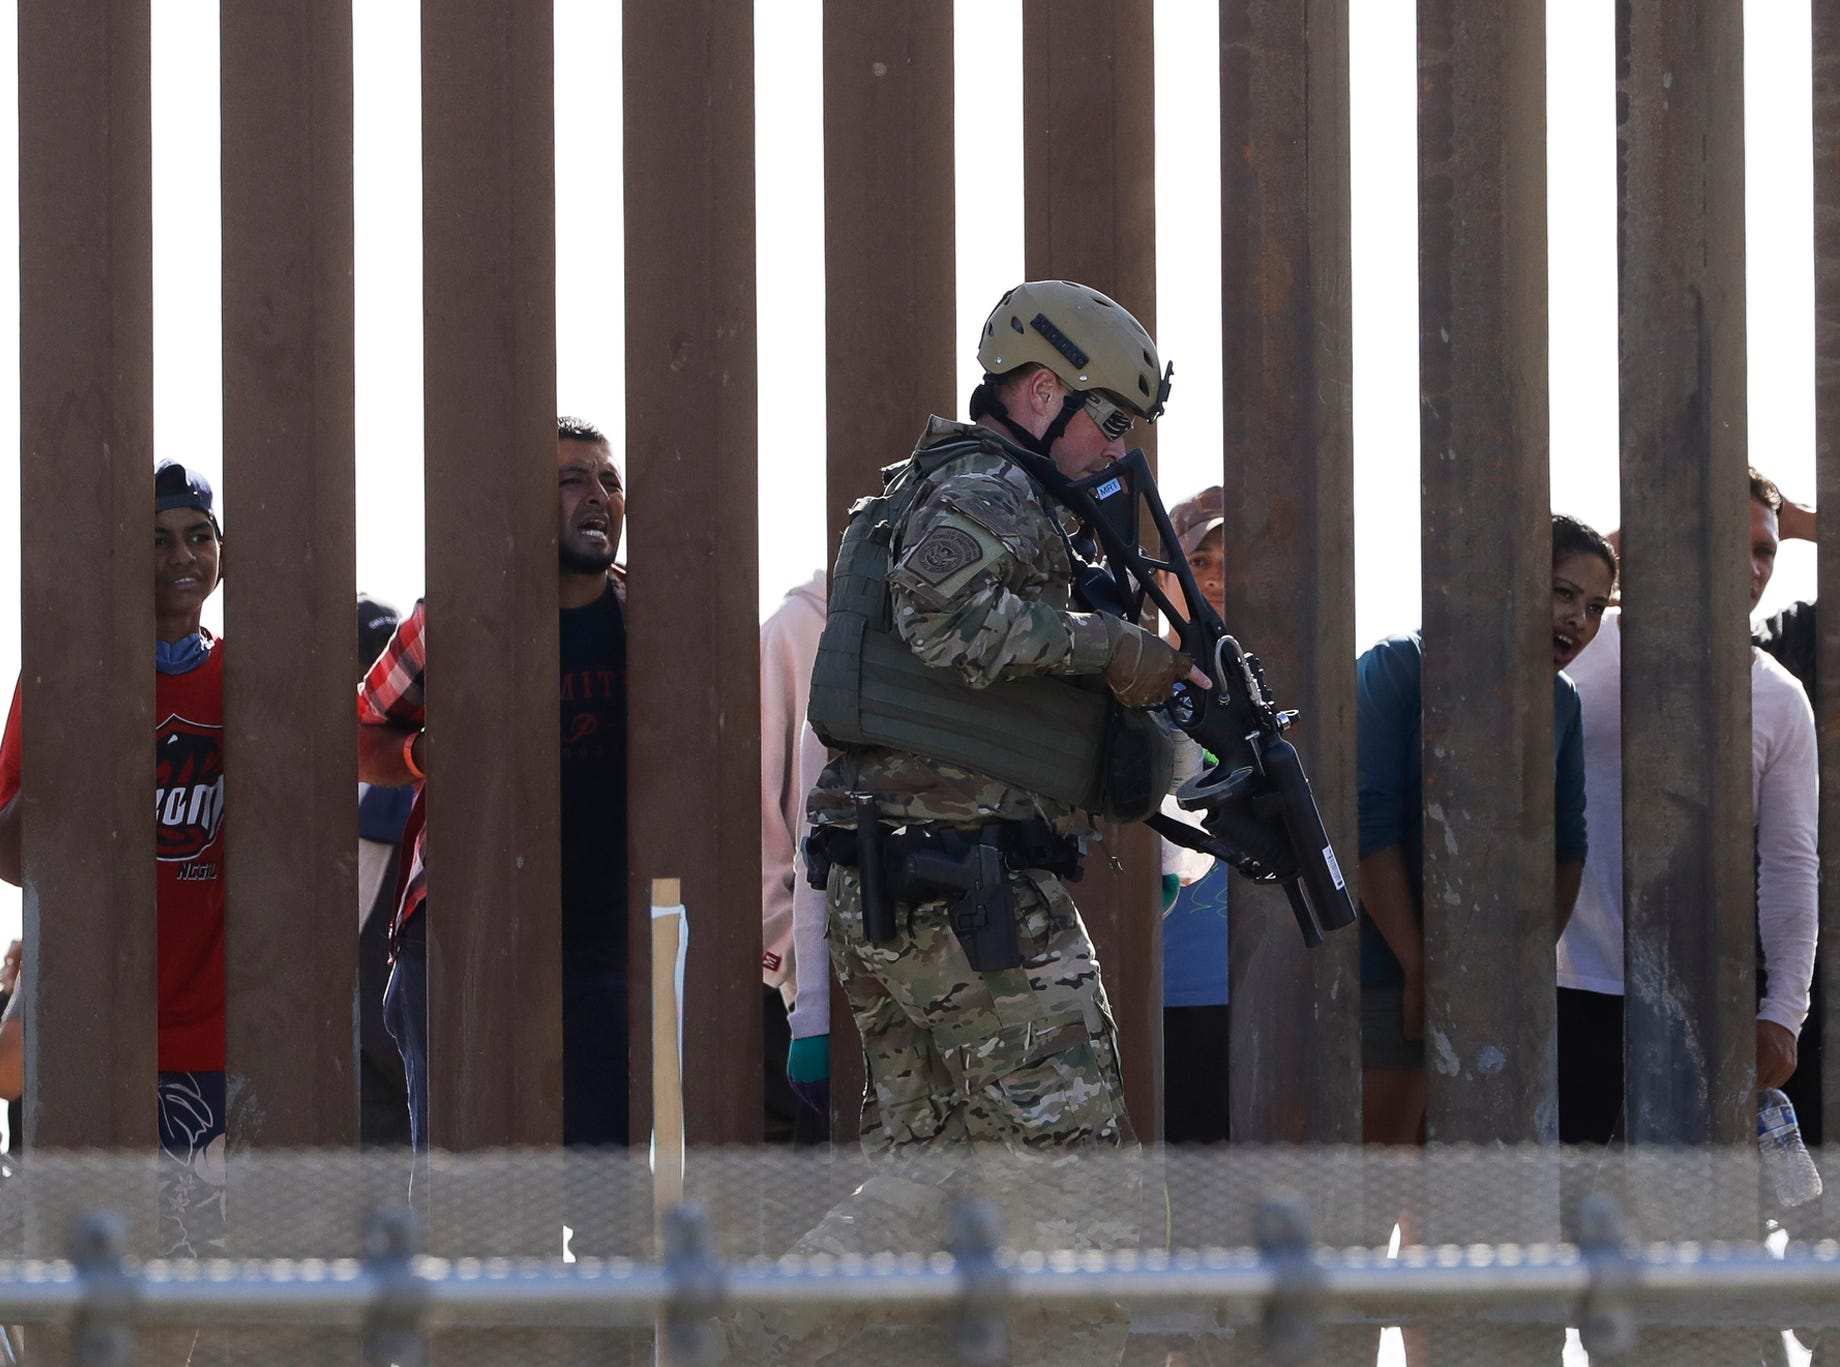 U.S. Customs and Border Protection officers walks along a wall at the border between Mexico and the United States, as seen from San Diego on Sunday, Nov. 25, 2018. Migrants approaching the U.S. border from Mexico were enveloped with tear gas Sunday after a few tried to breach a fence separating the two countries. The Border Patrol office in San Diego said via Twitter that pedestrian crossings have been suspended at the San Ysidro port of entry at both the East and West facilities. All northbound and southbound traffic was halted.